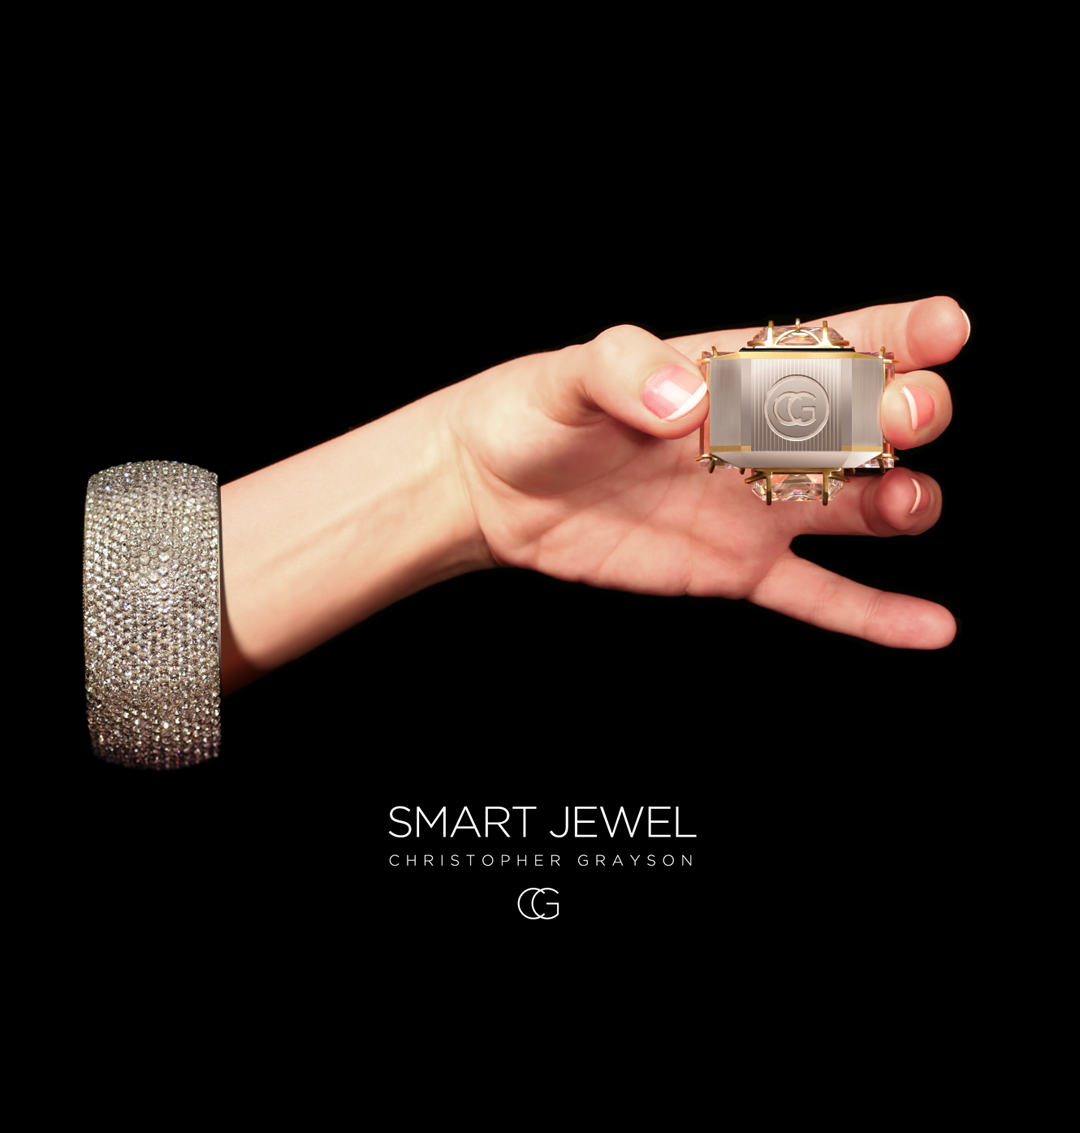 SMART JEWEL in HAND